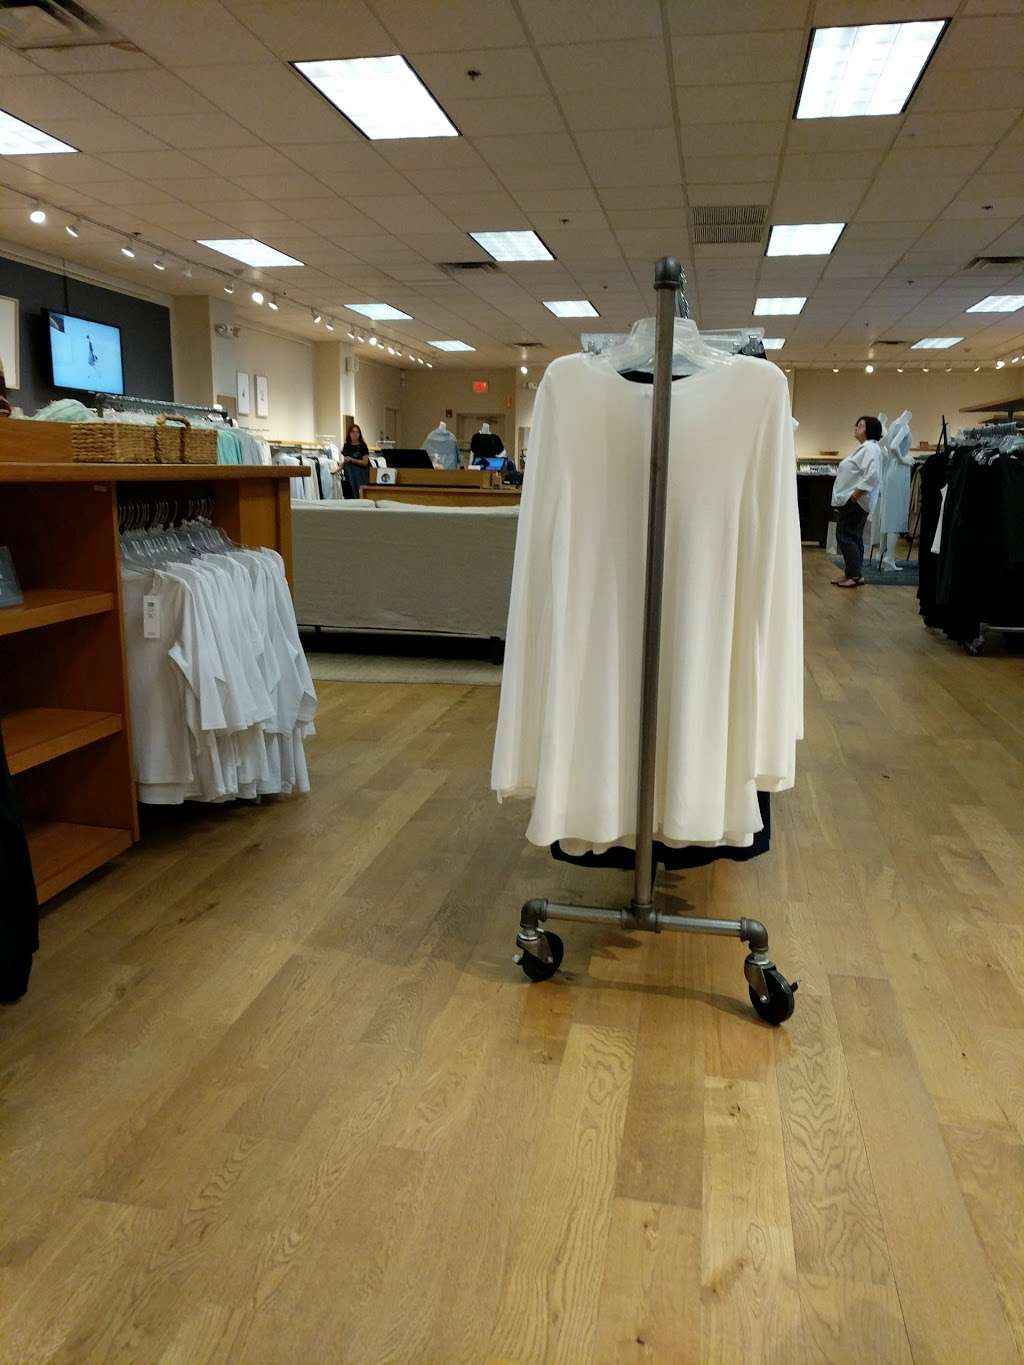 EILEEN FISHER - clothing store  | Photo 2 of 7 | Address: 45 Enterprise Ave N, Secaucus, NJ 07094, USA | Phone: (201) 866-0300